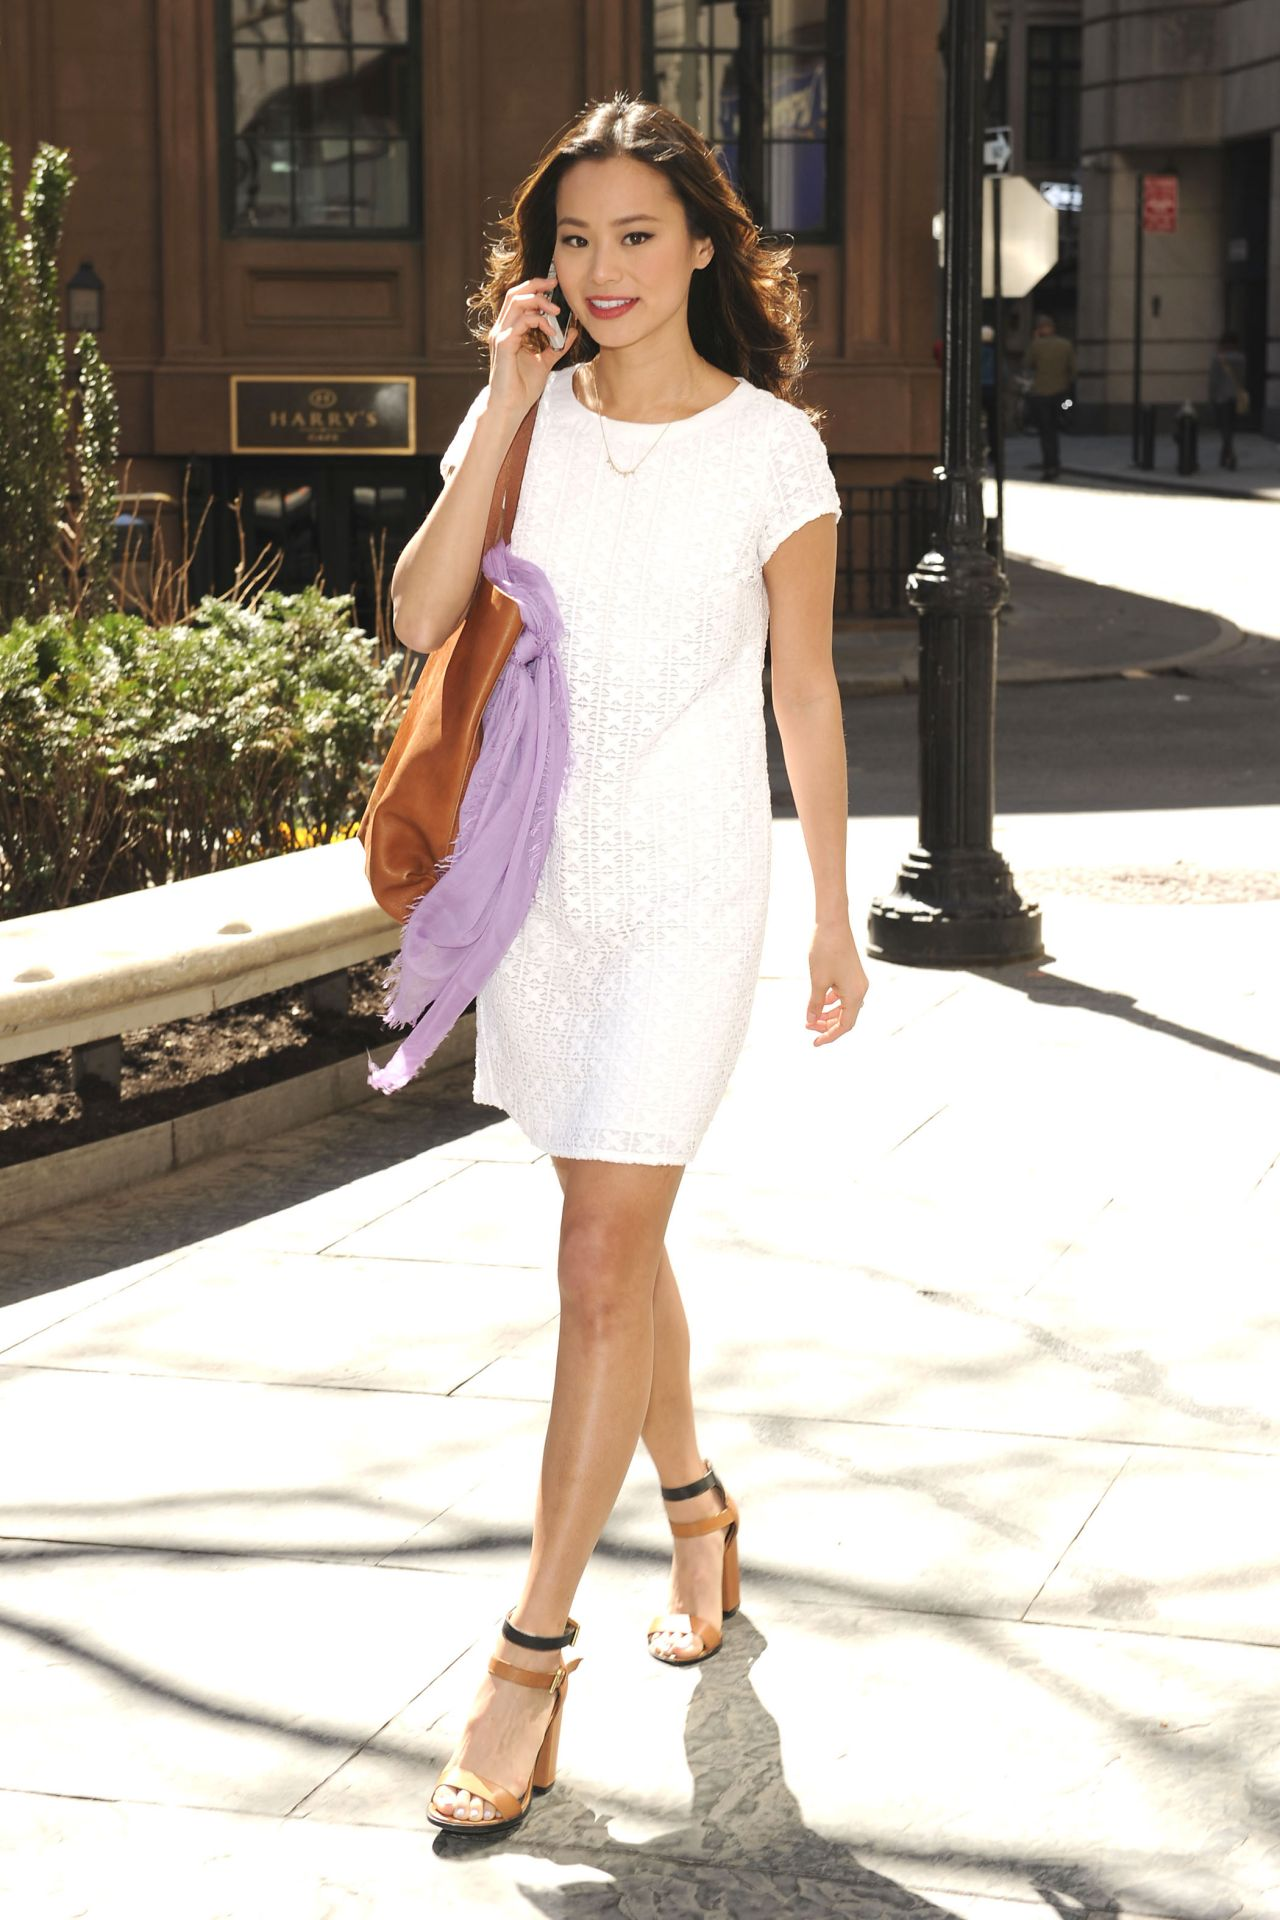 Jamie-Chung-white-dress-and-strappy-sandals